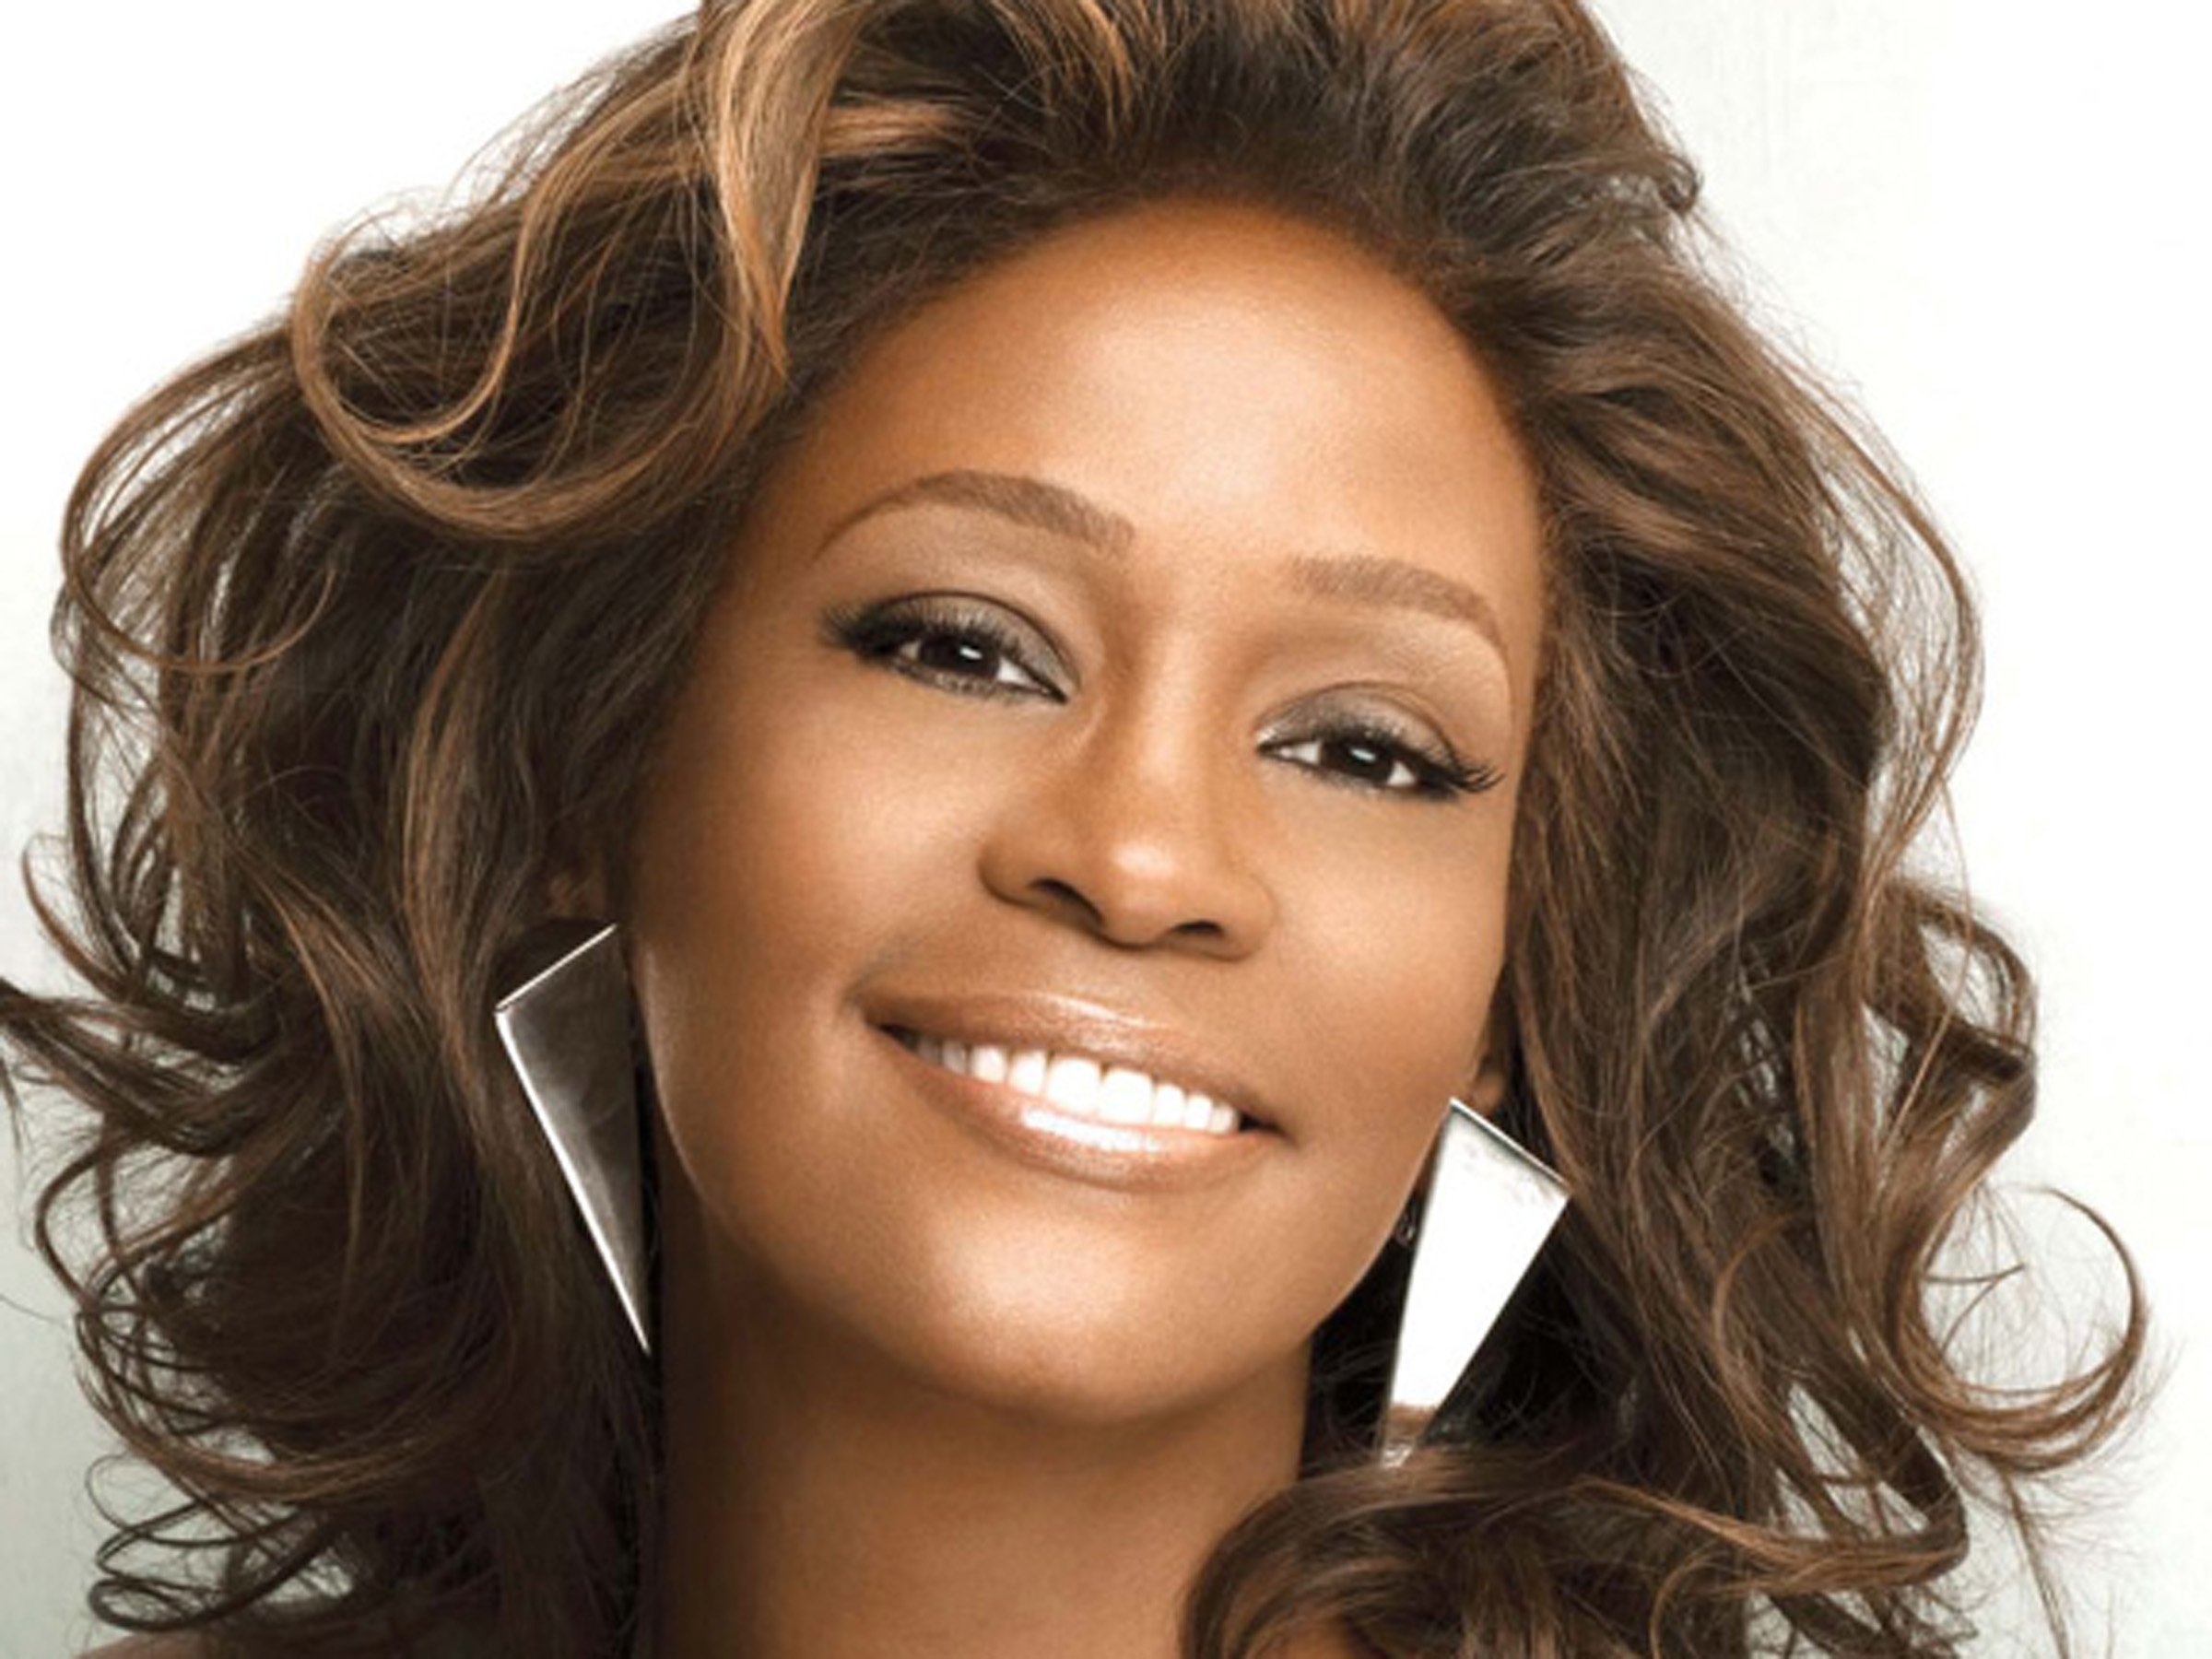 50 Interesting Facts About Whitney Houston : People : BOOMSbeat.